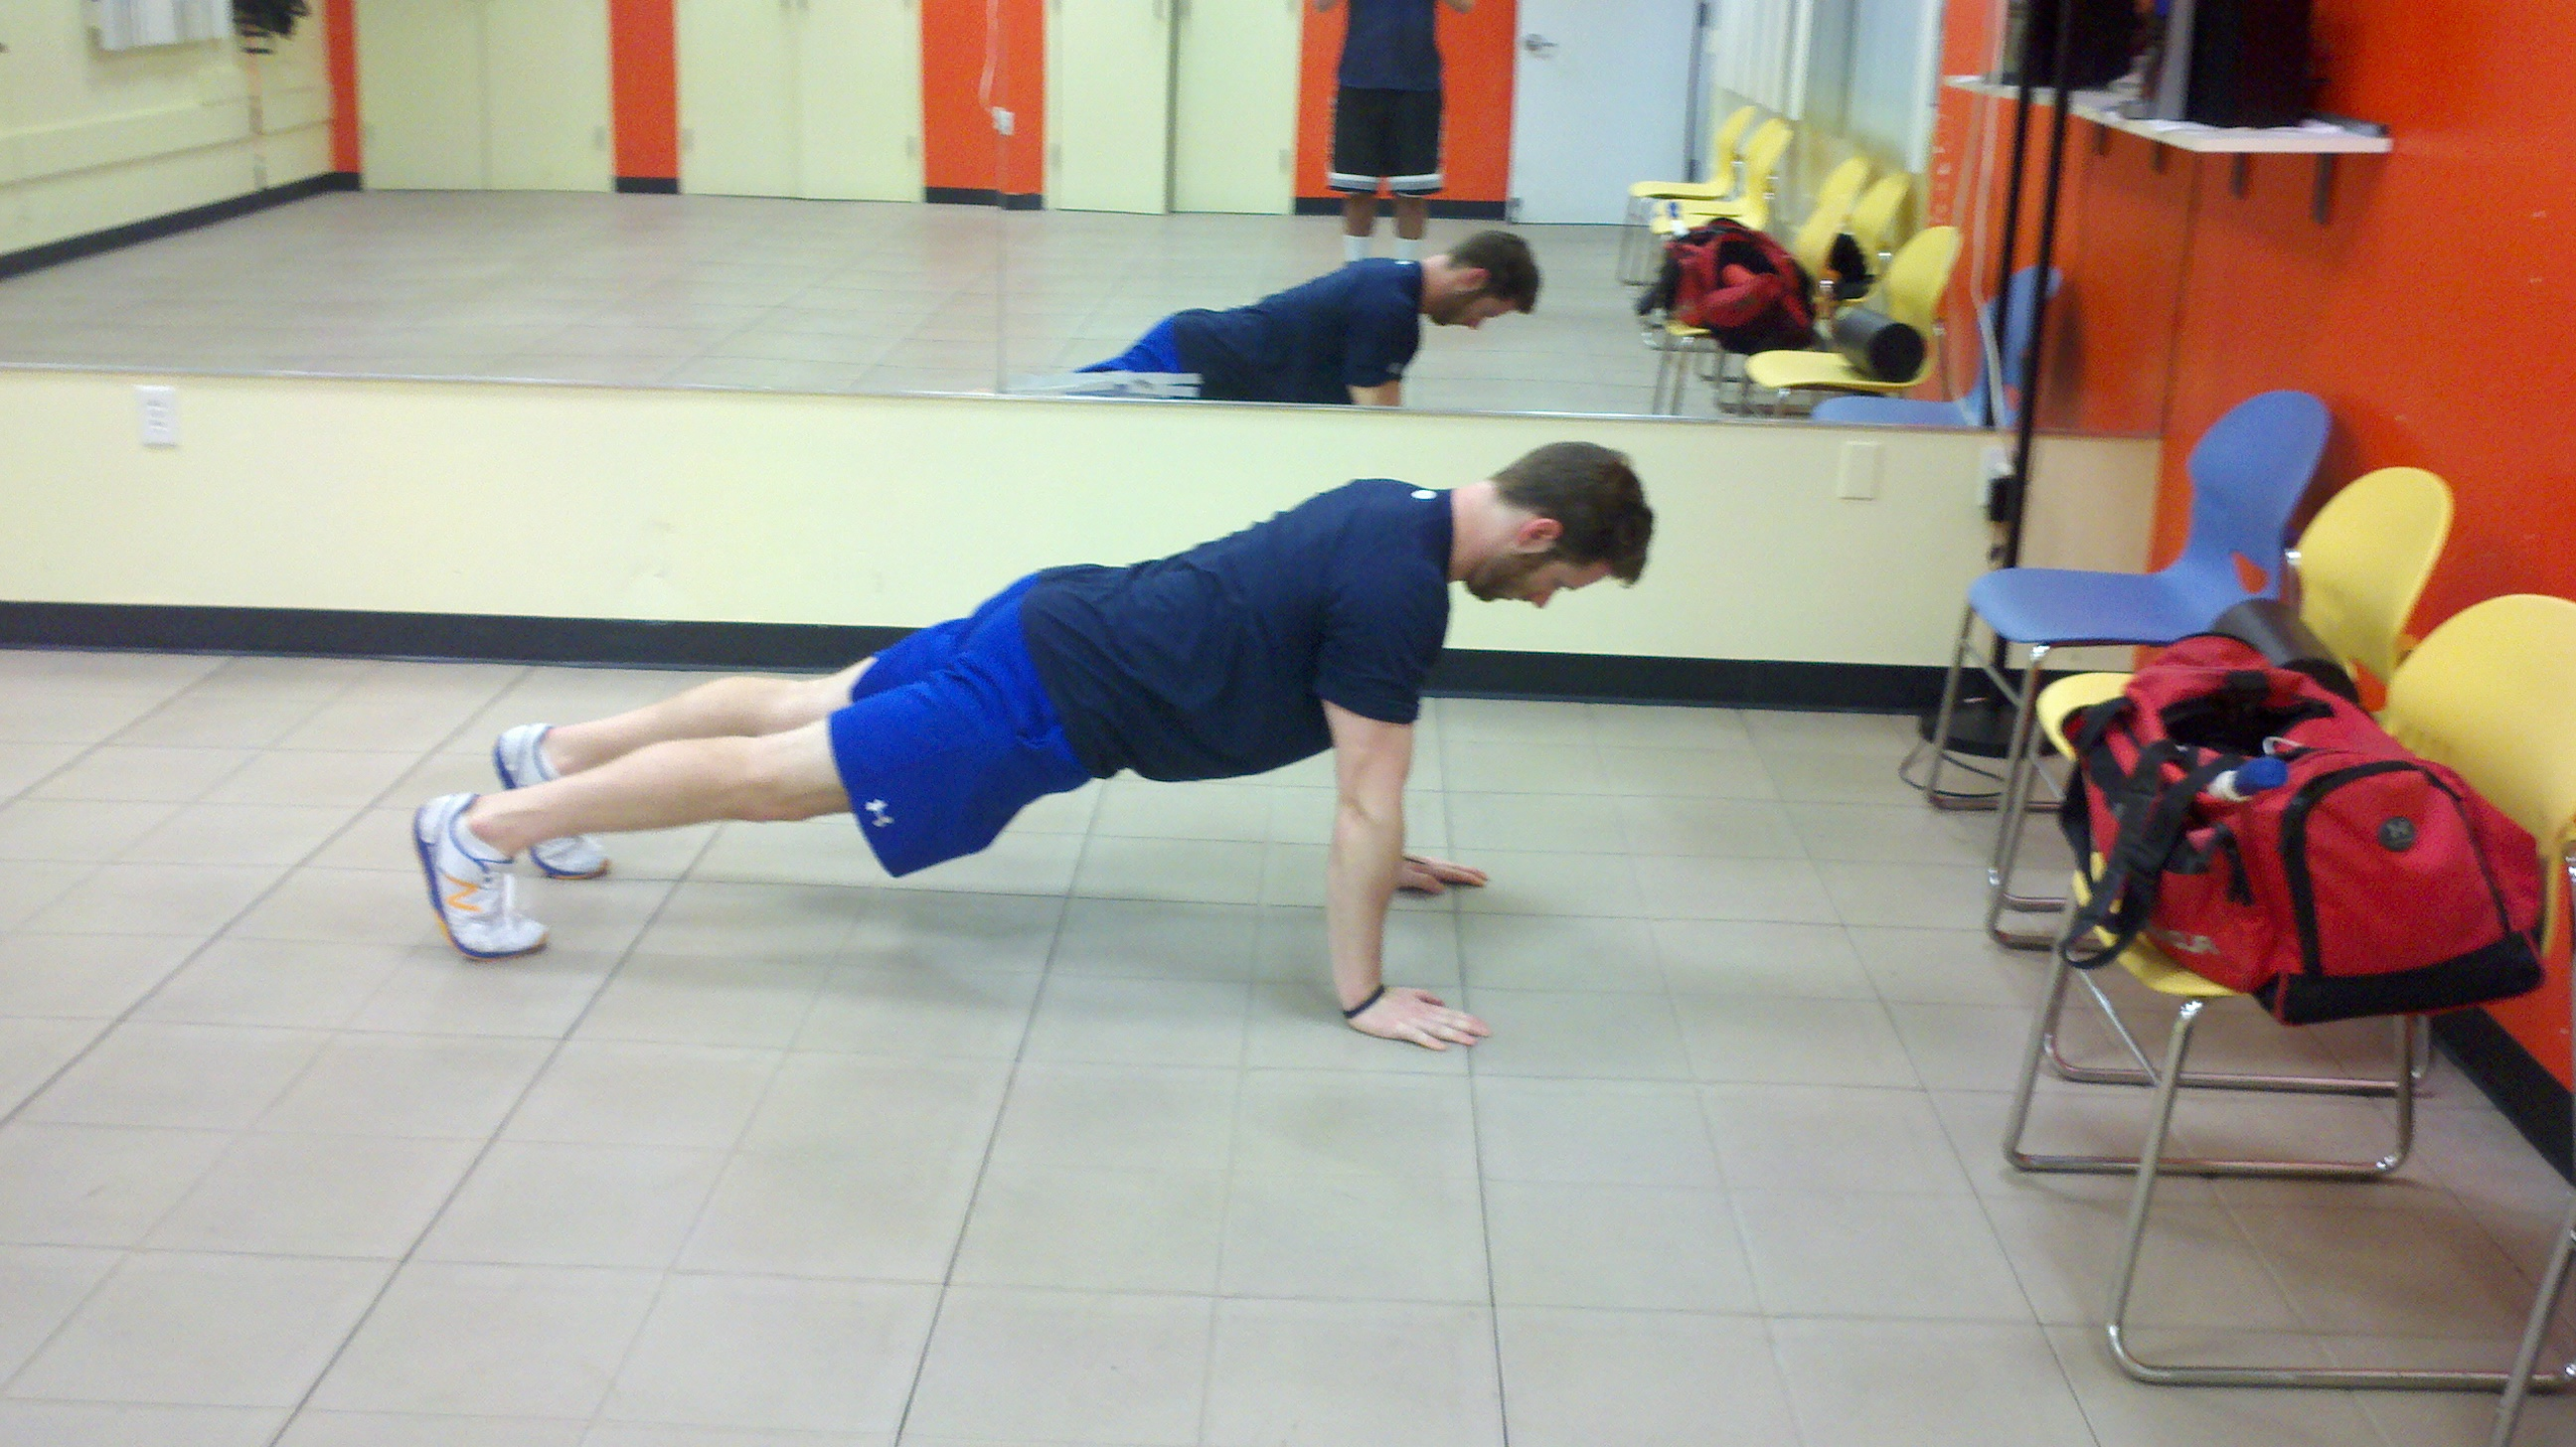 Plank Exercise Move - Viewing Gallery